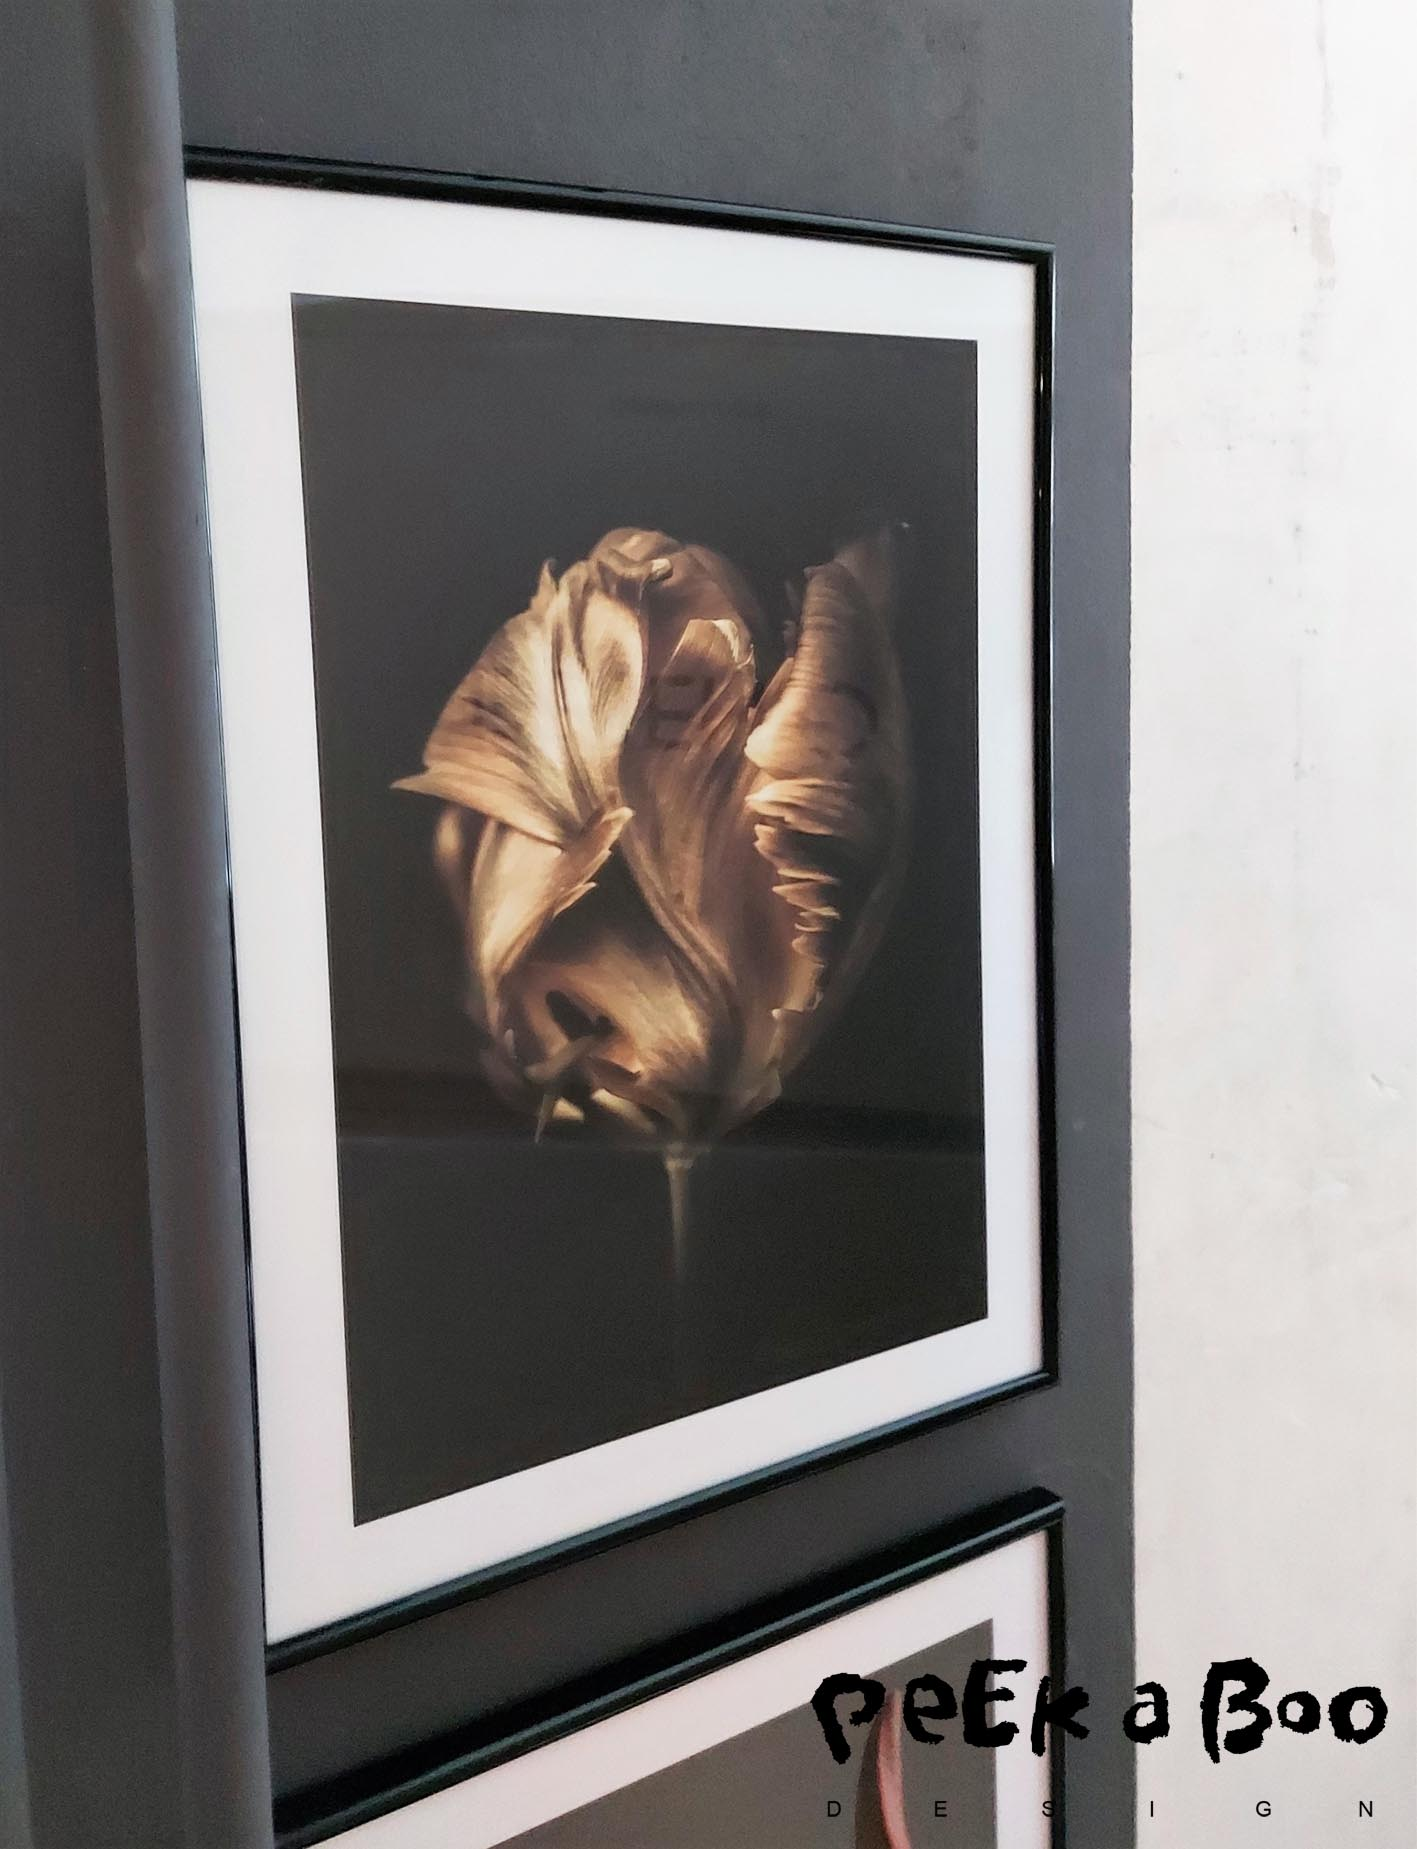 It was love at first sight when I saw this Golden tulip from Desenio.